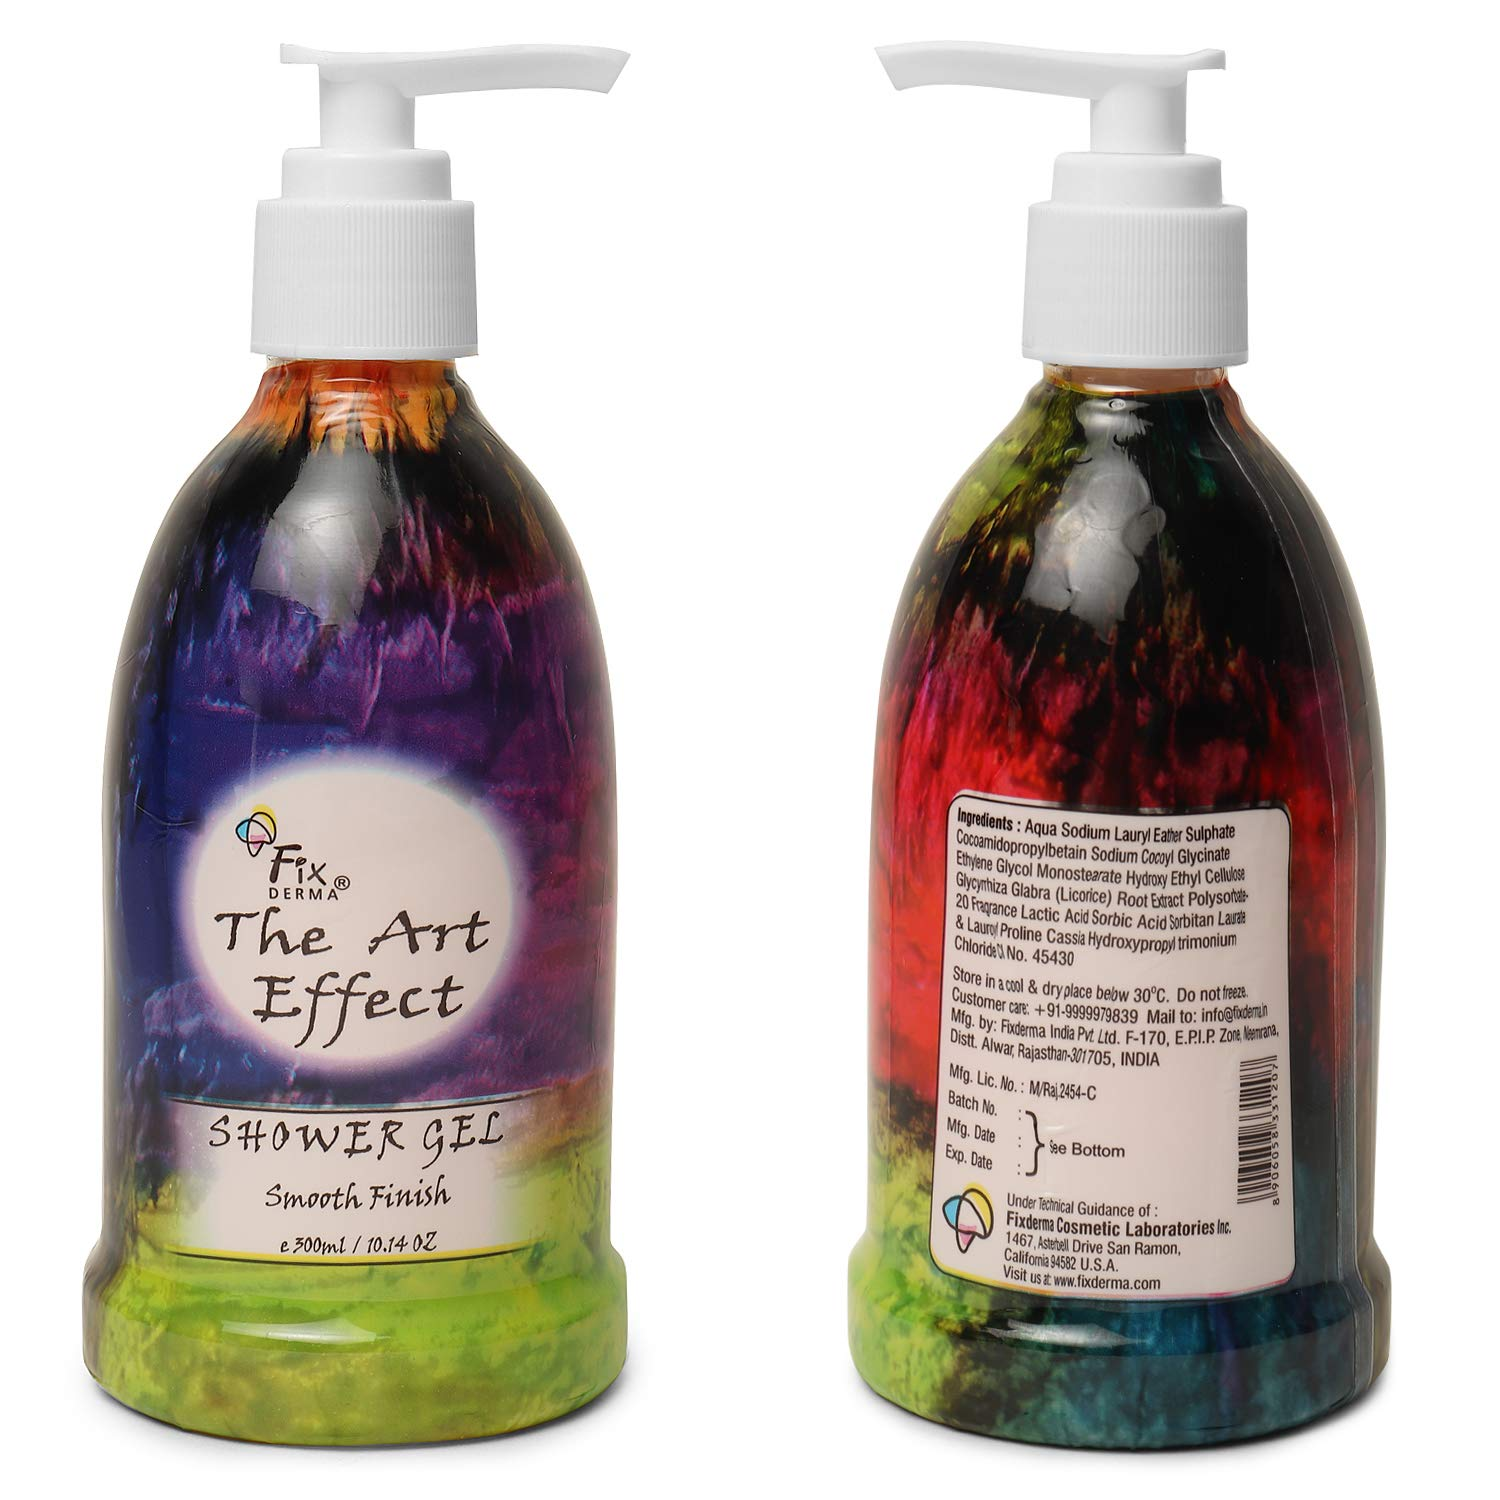 The Art Effect Shower Gel Smooth Finish Body Wash With Extra Moisturizer Non-Greasy Non-Drying Hydrating & Soothing 300ml